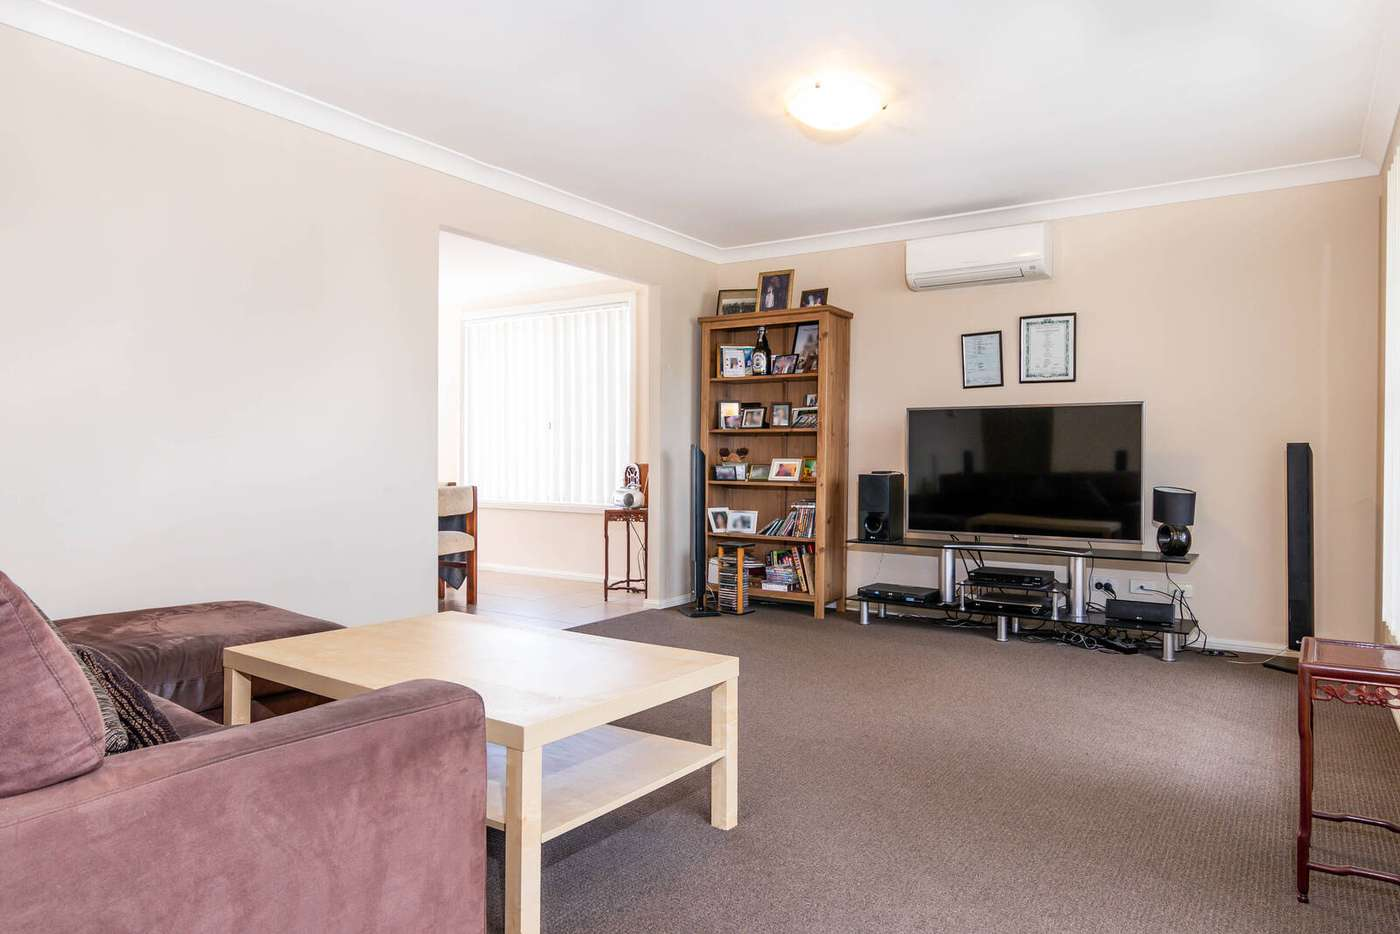 Fifth view of Homely house listing, 116 Dalwood Road, East Branxton NSW 2335